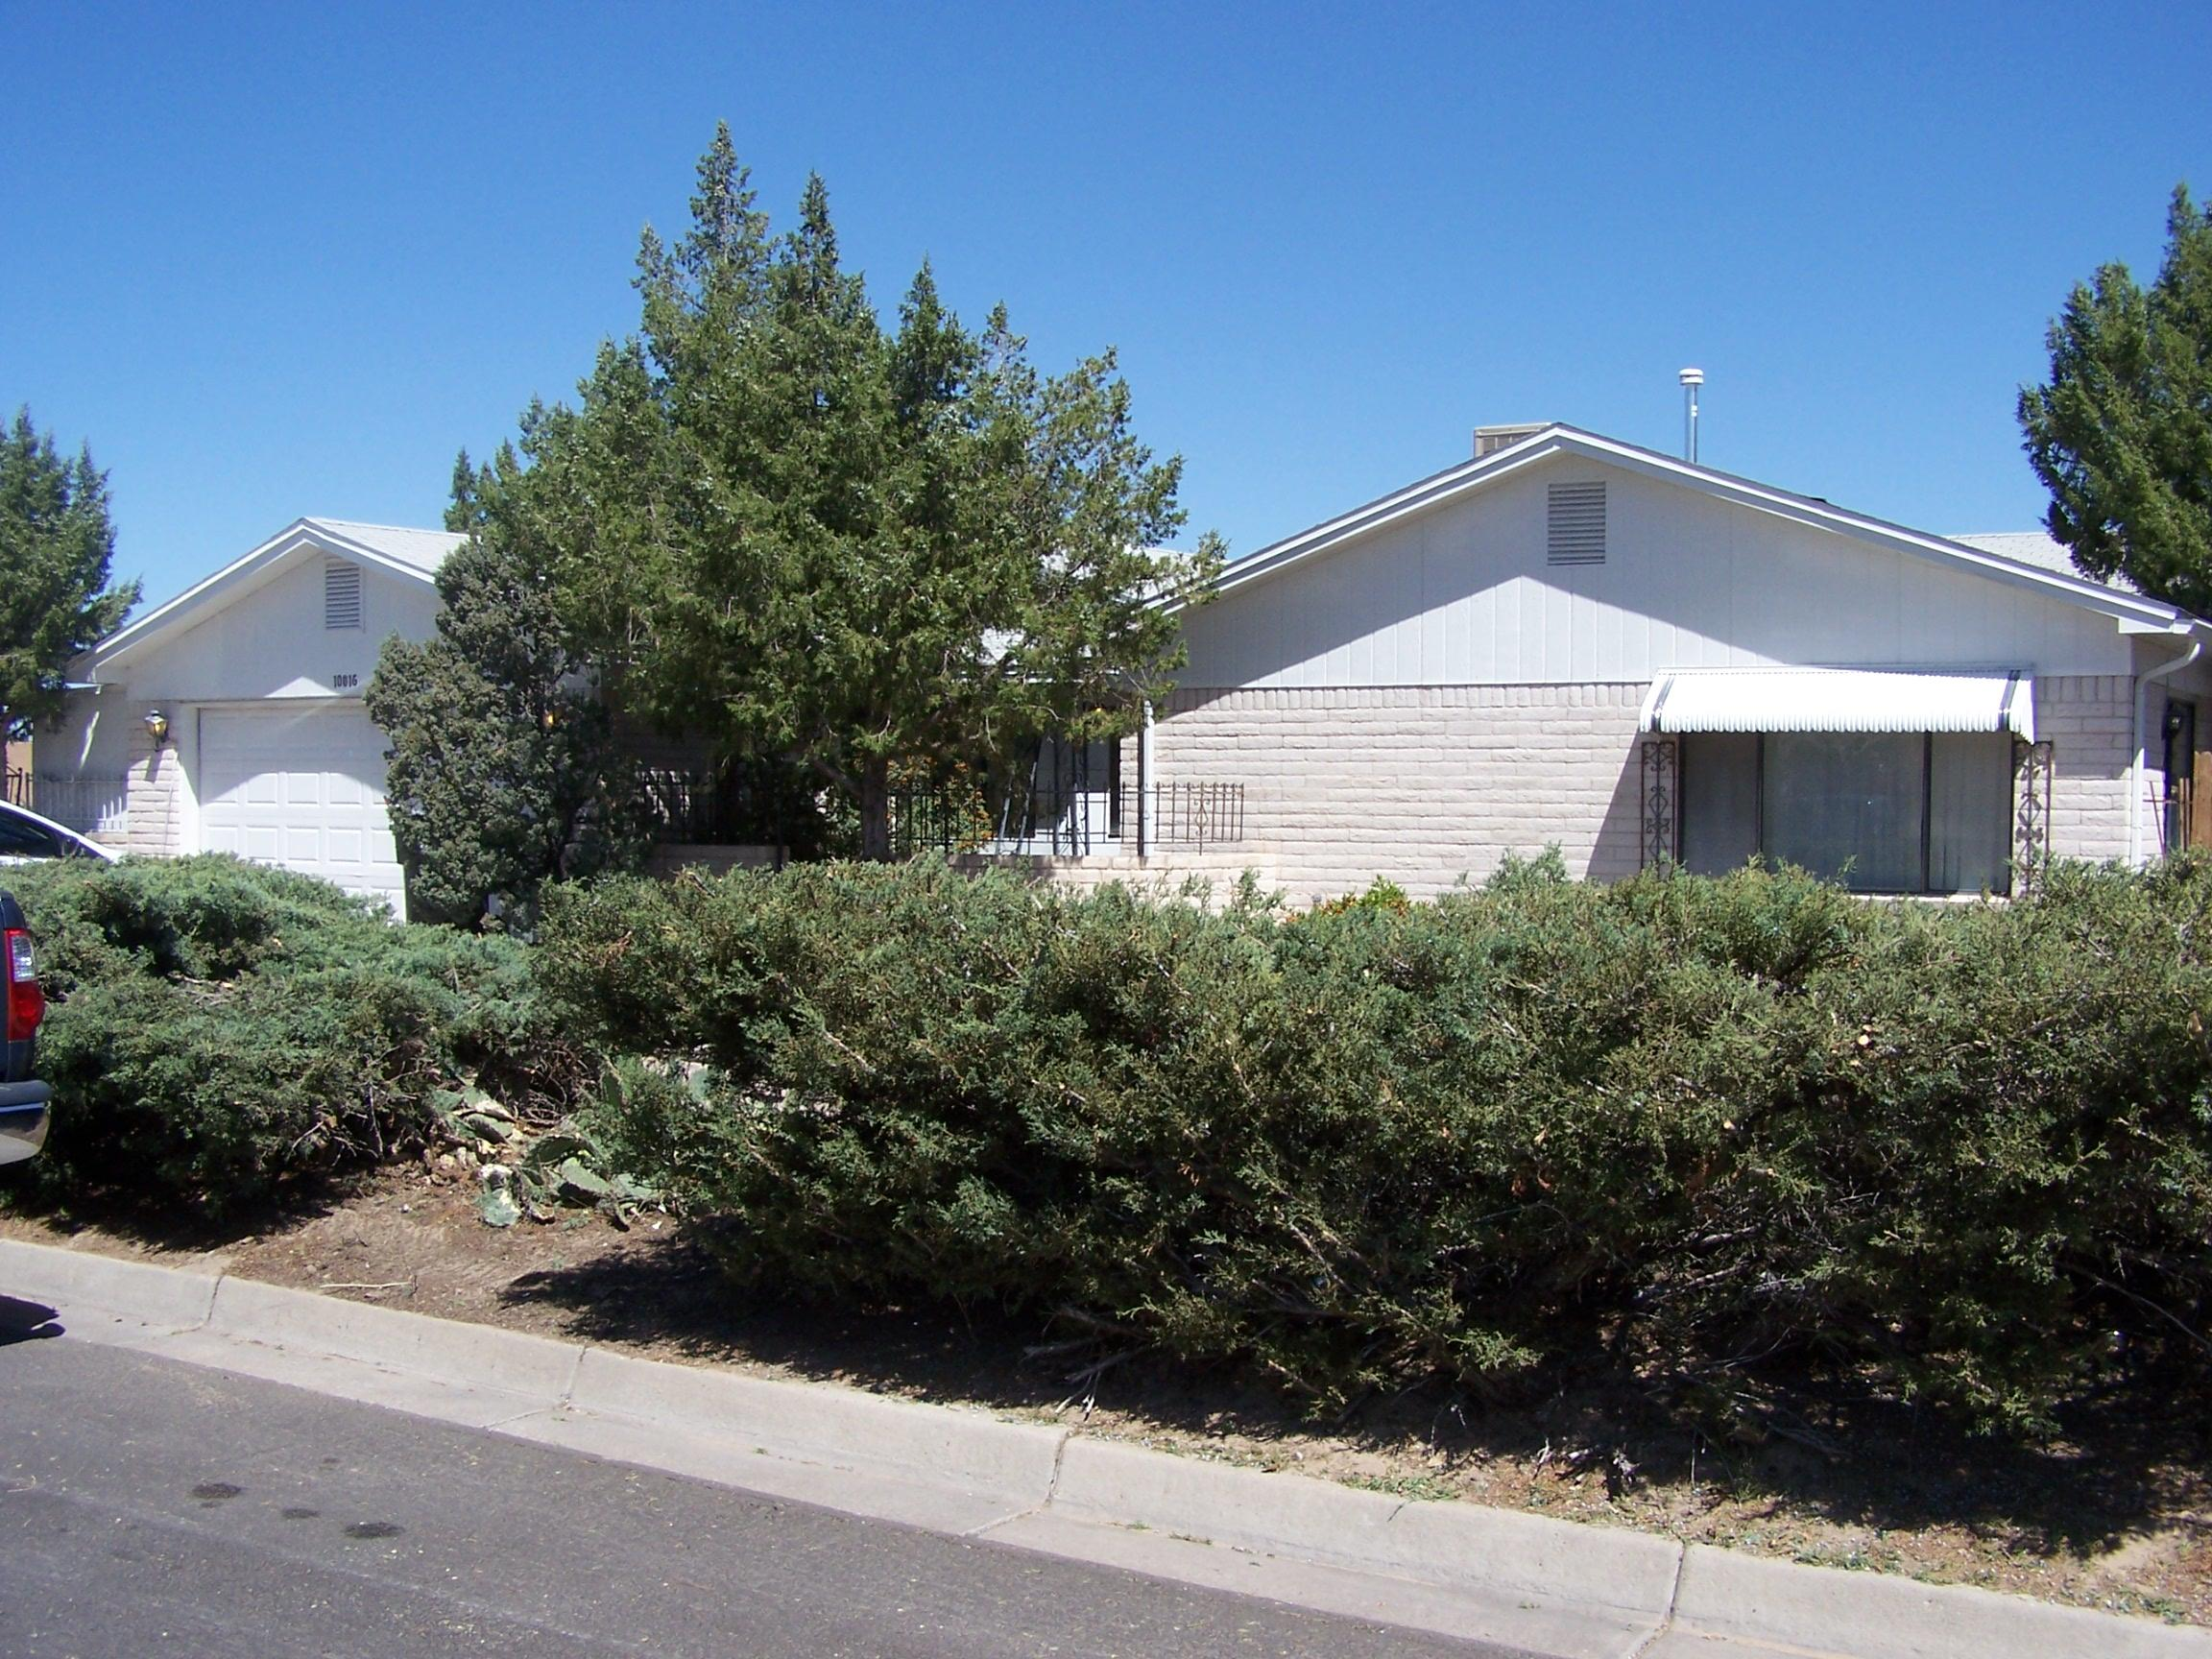 10016 CHANTILLY Road NW, Albuquerque, NM 87114 - Albuquerque, NM real estate listing